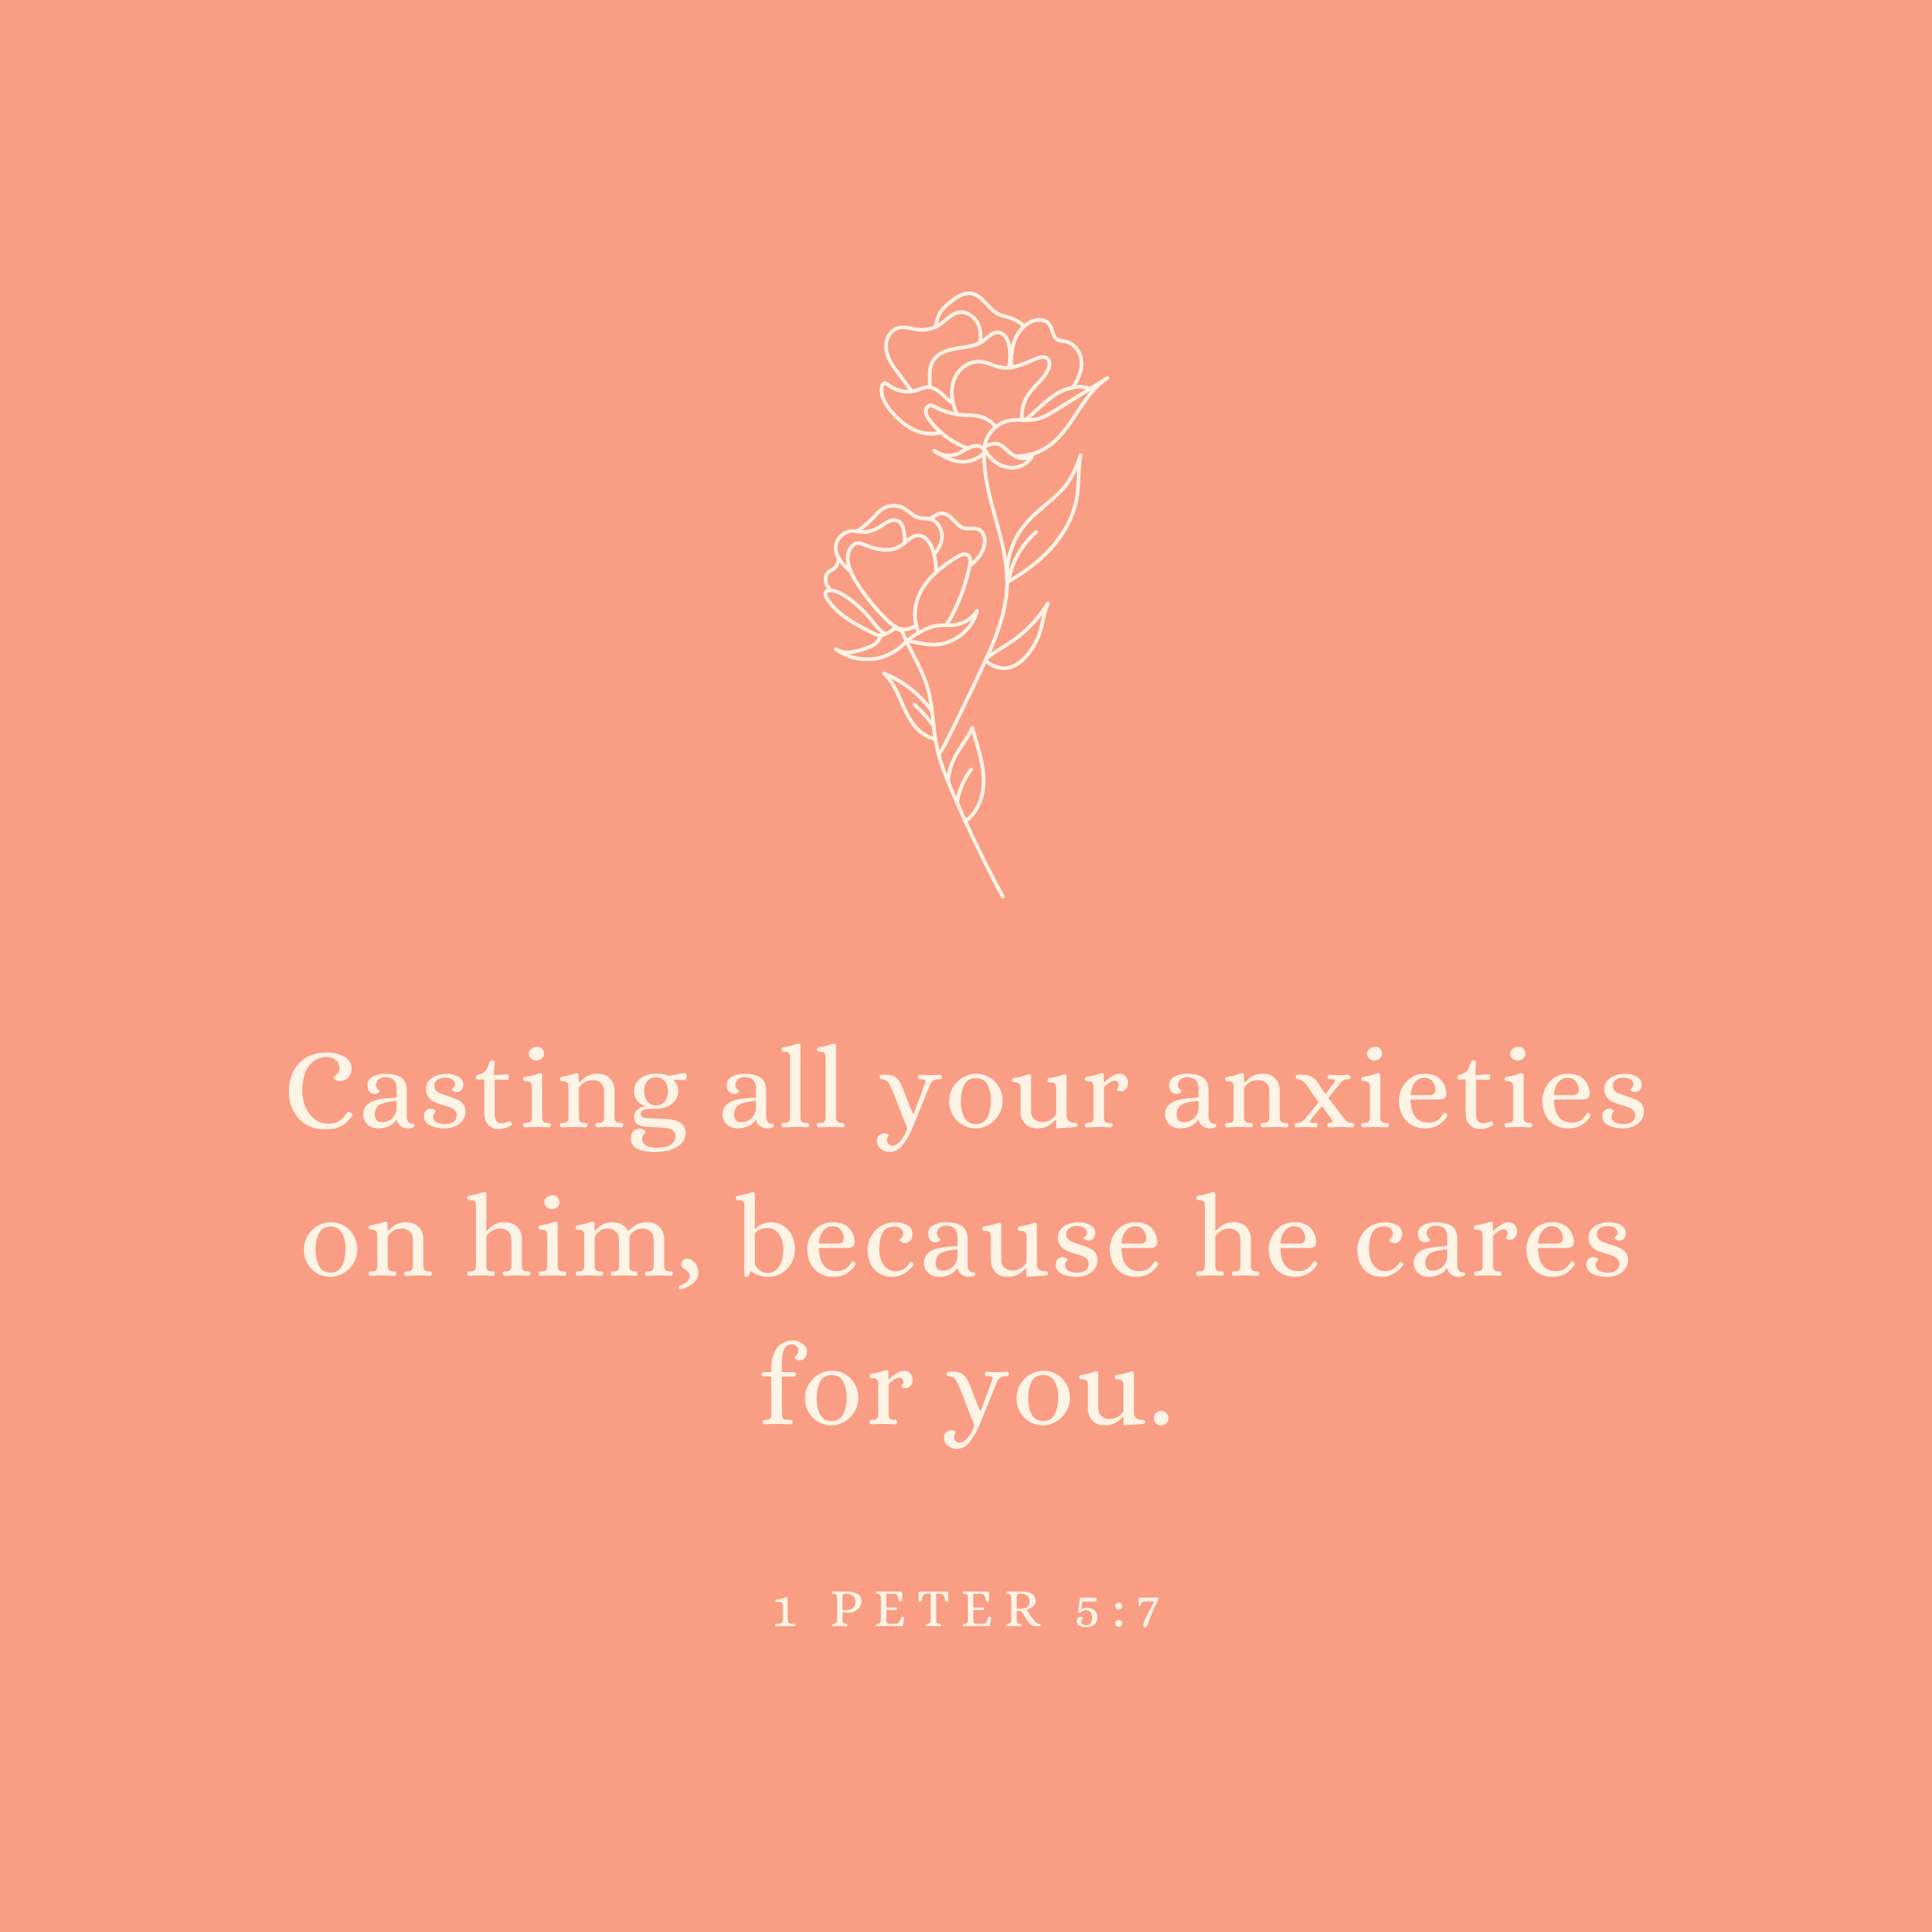 1 Peter 5:7 Casting all your anxieties on him, because he cares for you.